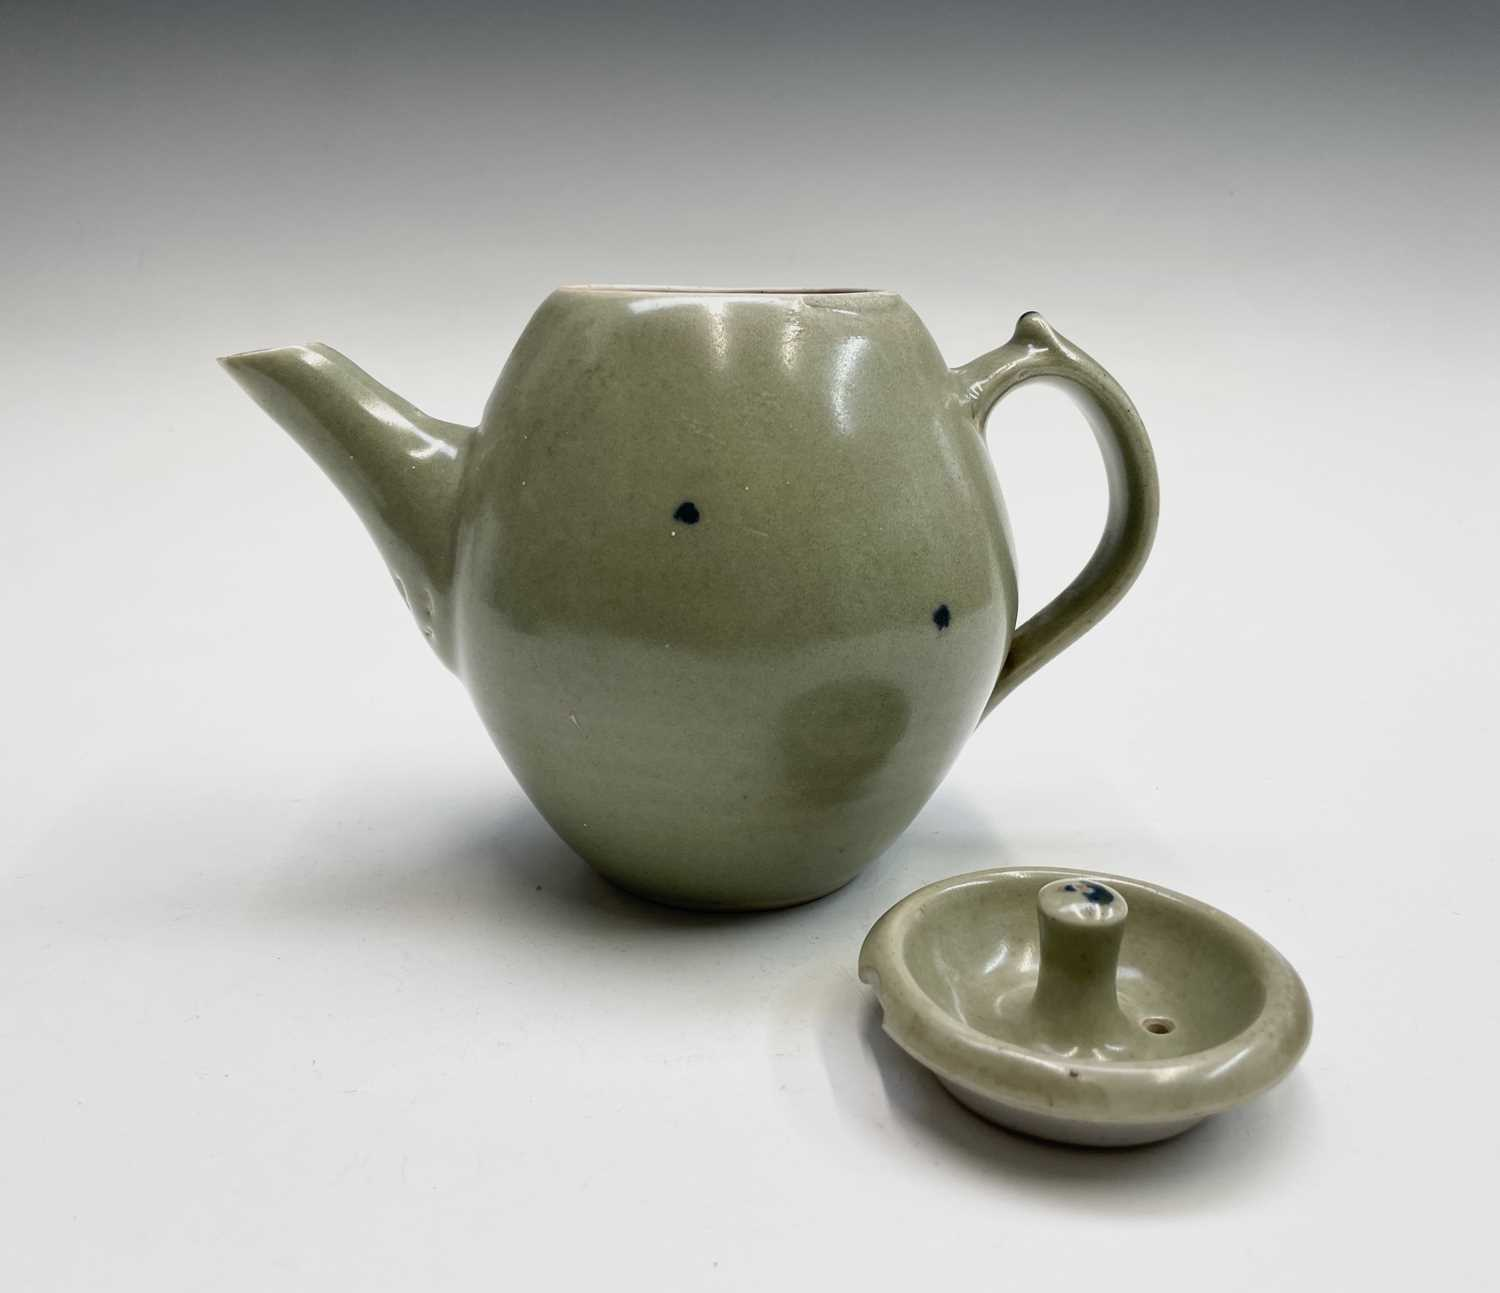 A Leach Pottery, St Ives, celadon glazed teapot, height 14cm, with impressed Leach seal and initials - Image 9 of 11